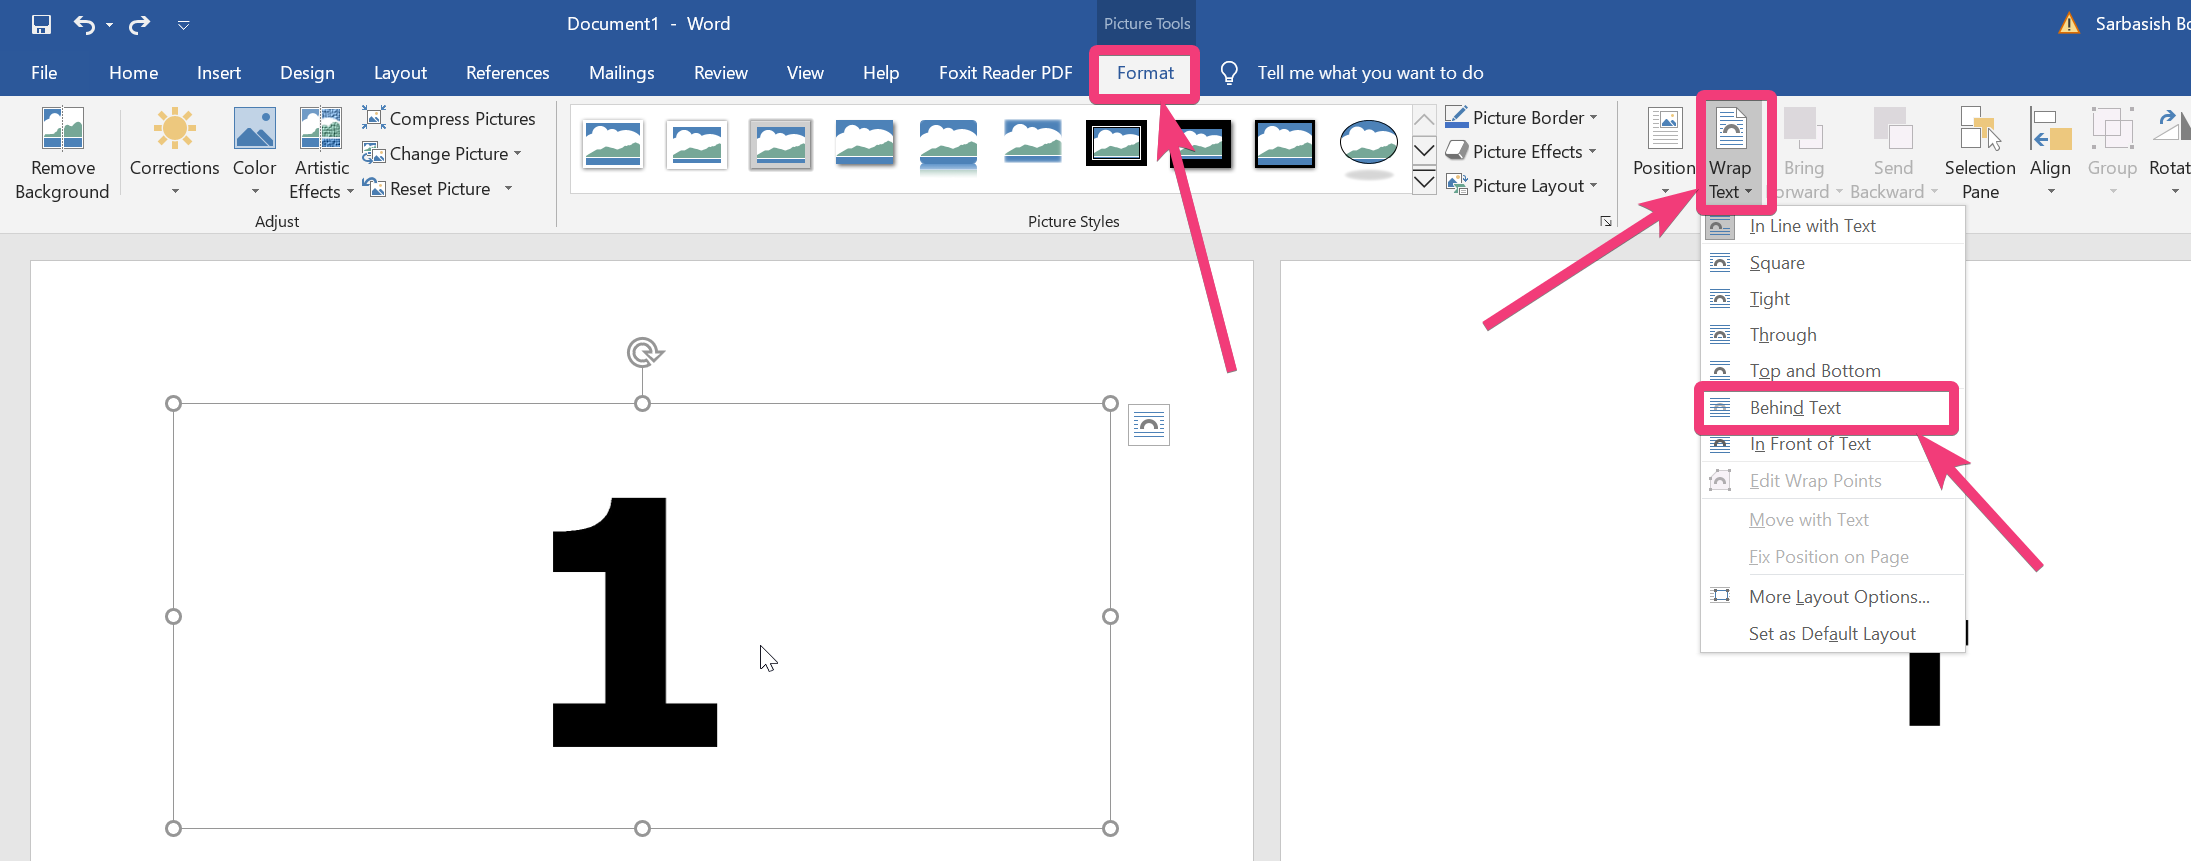 Merge images to a single PDF 80